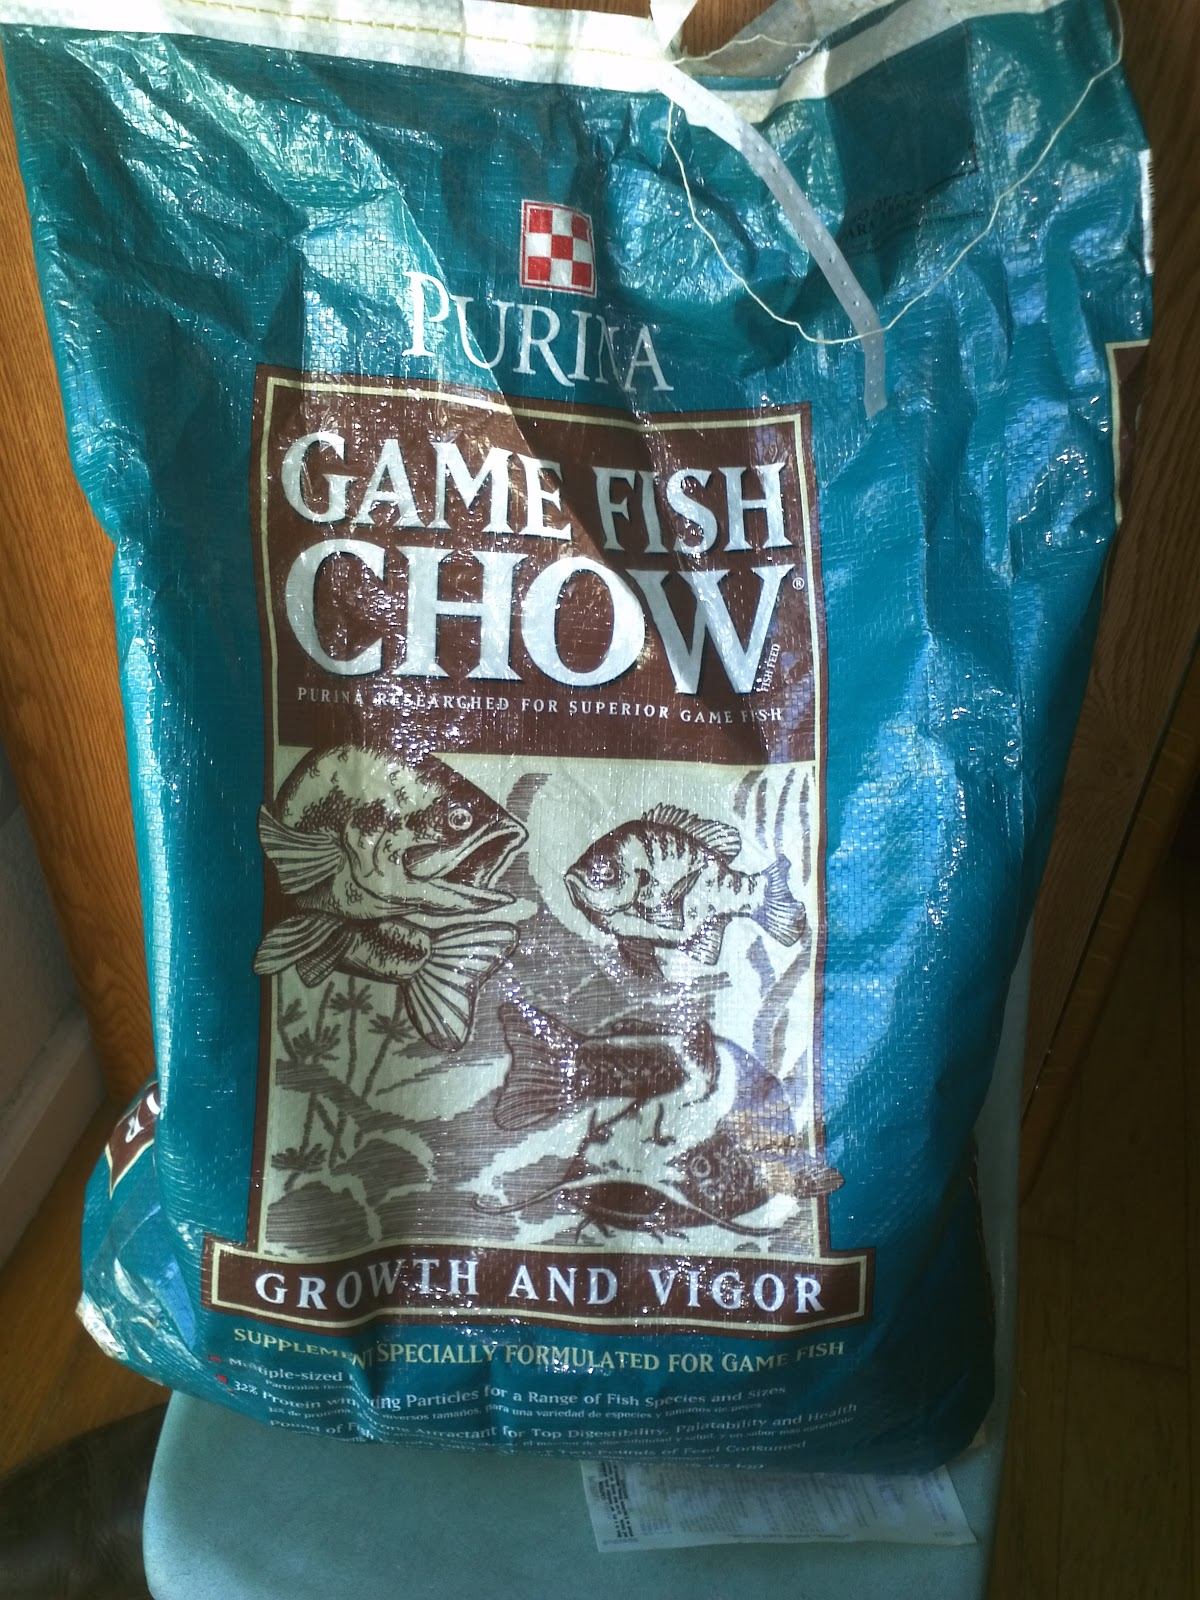 Wolfenhawke1 food for tilapia for Purina game fish chow